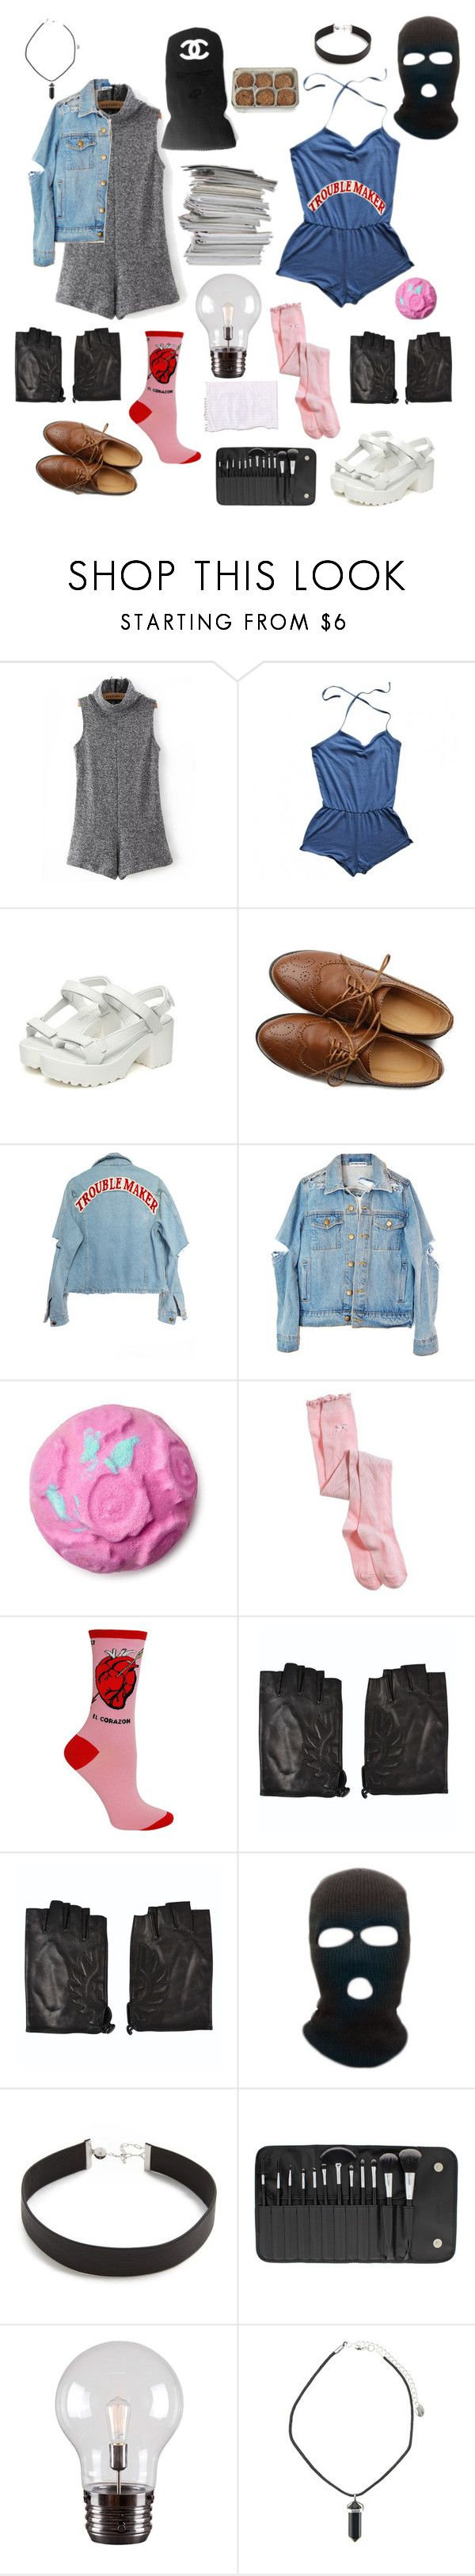 """Heathen summer"" by model-massacure ❤ liked on Polyvore featuring WithChic, American Apparel, NYMPHENBURG, Ollio, High Heels Suicide, Aerie, Belstaff, Chanel, Jennifer Zeuner and BHCosmetics"